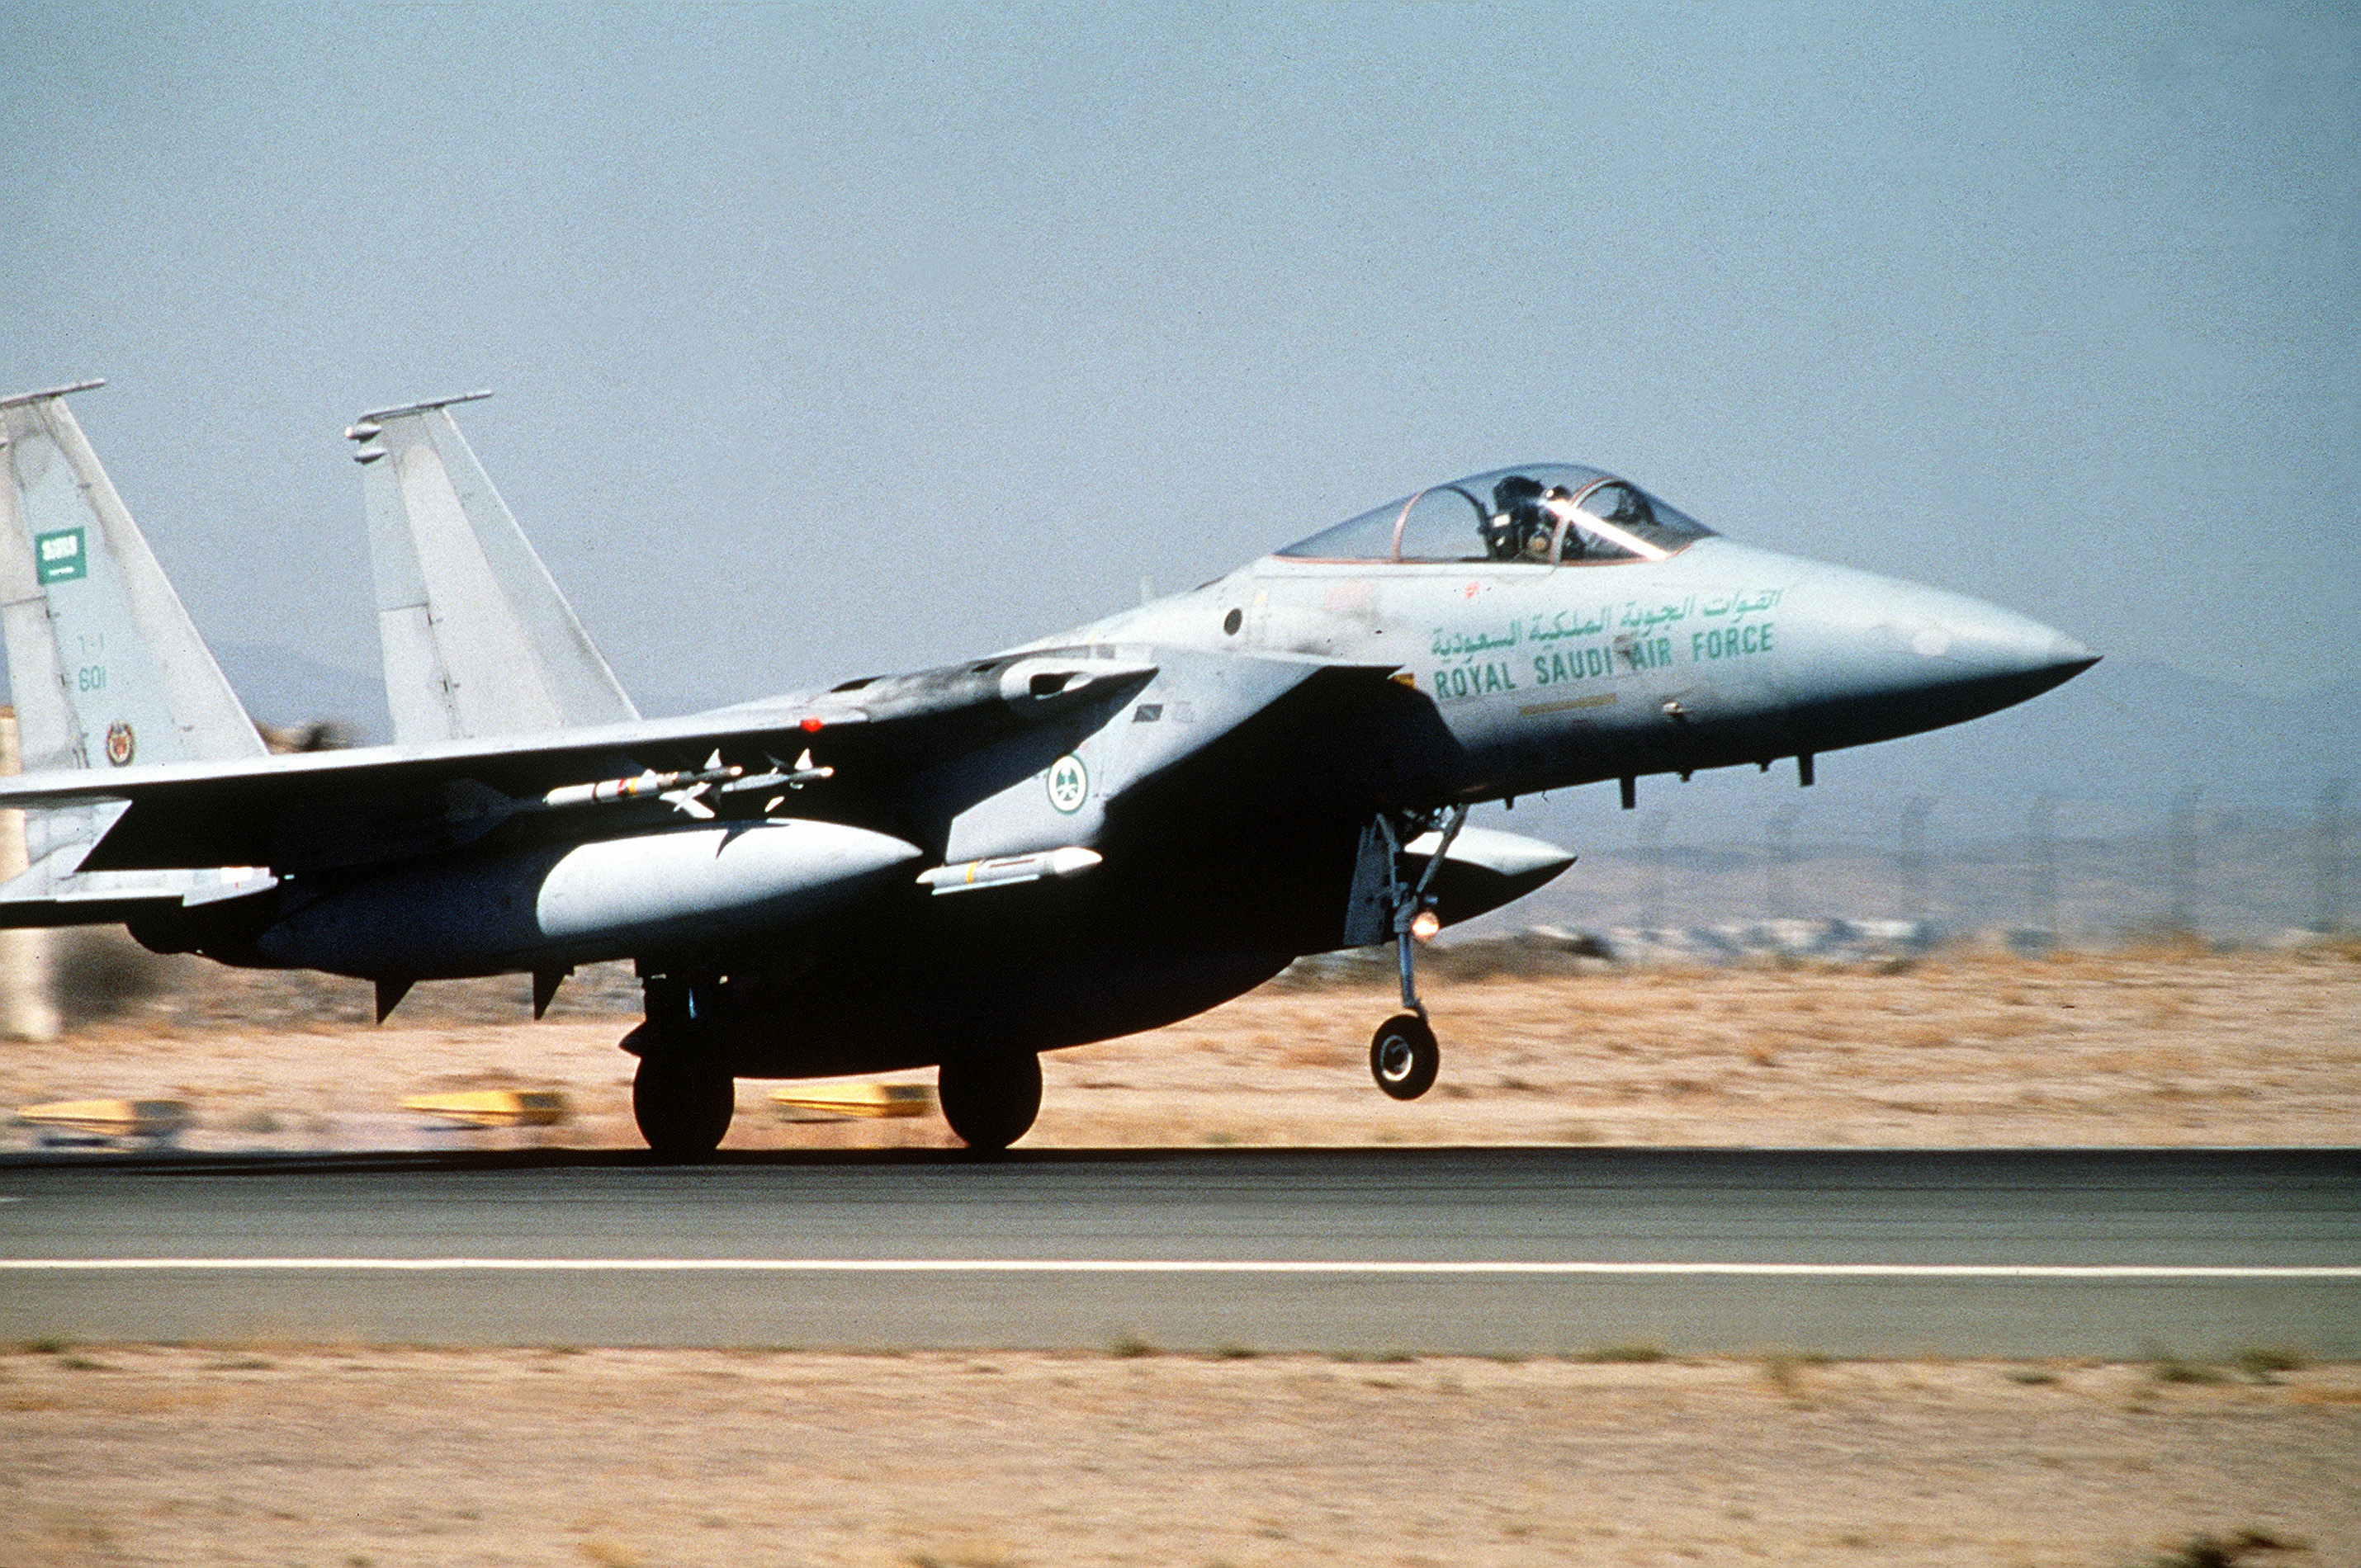 A Royal Saudi F-15 takes off during Operation Desert Shield.